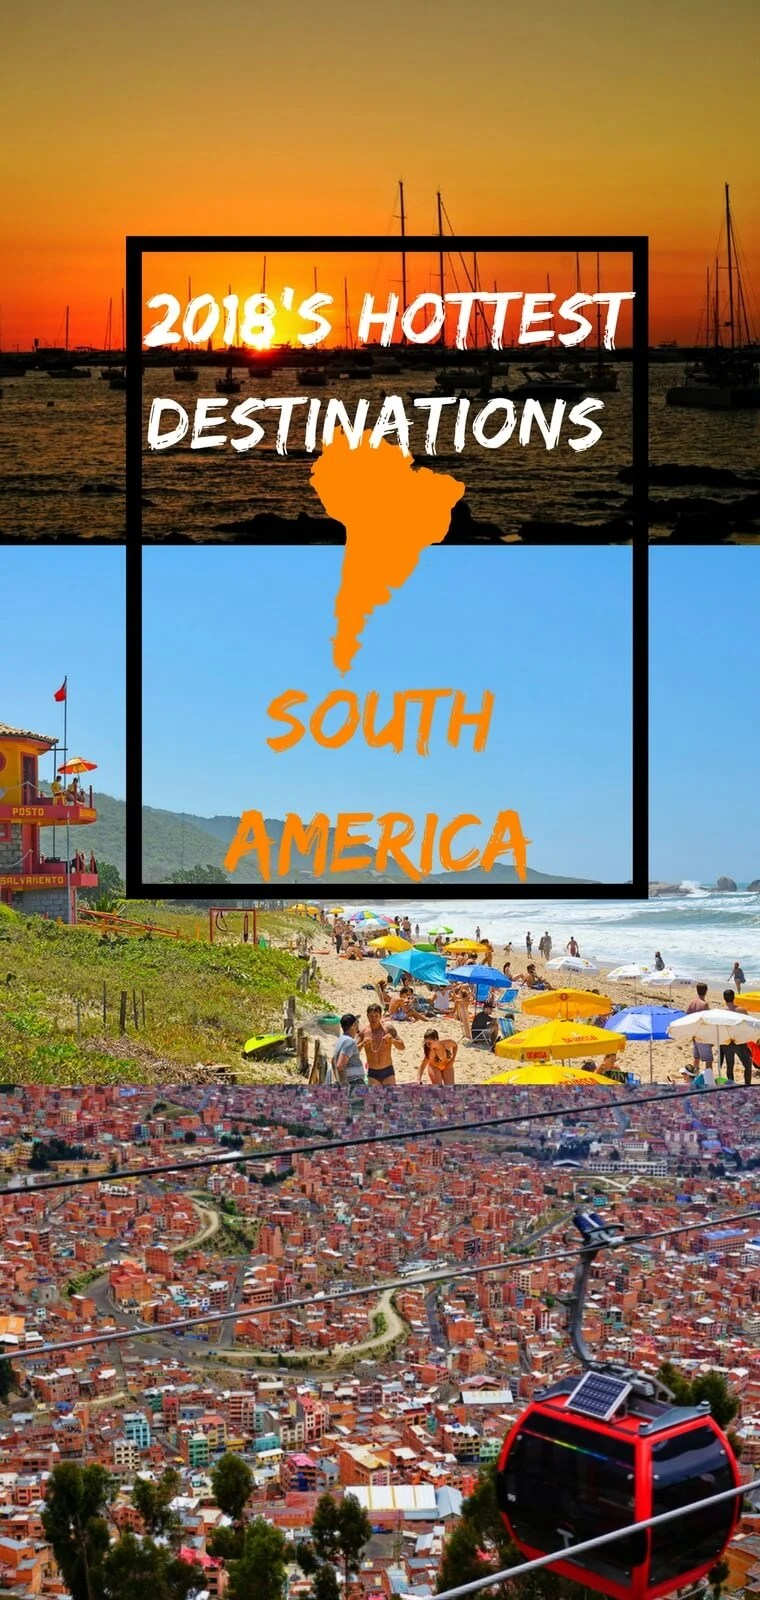 Looking for ideas on where to travel in South America? Don't miss these off the beaten path destinations in South America. From a fishing town in Peru, to Bolivia's capital, to a beach resort in Brazil, there is a lot to see in South America.